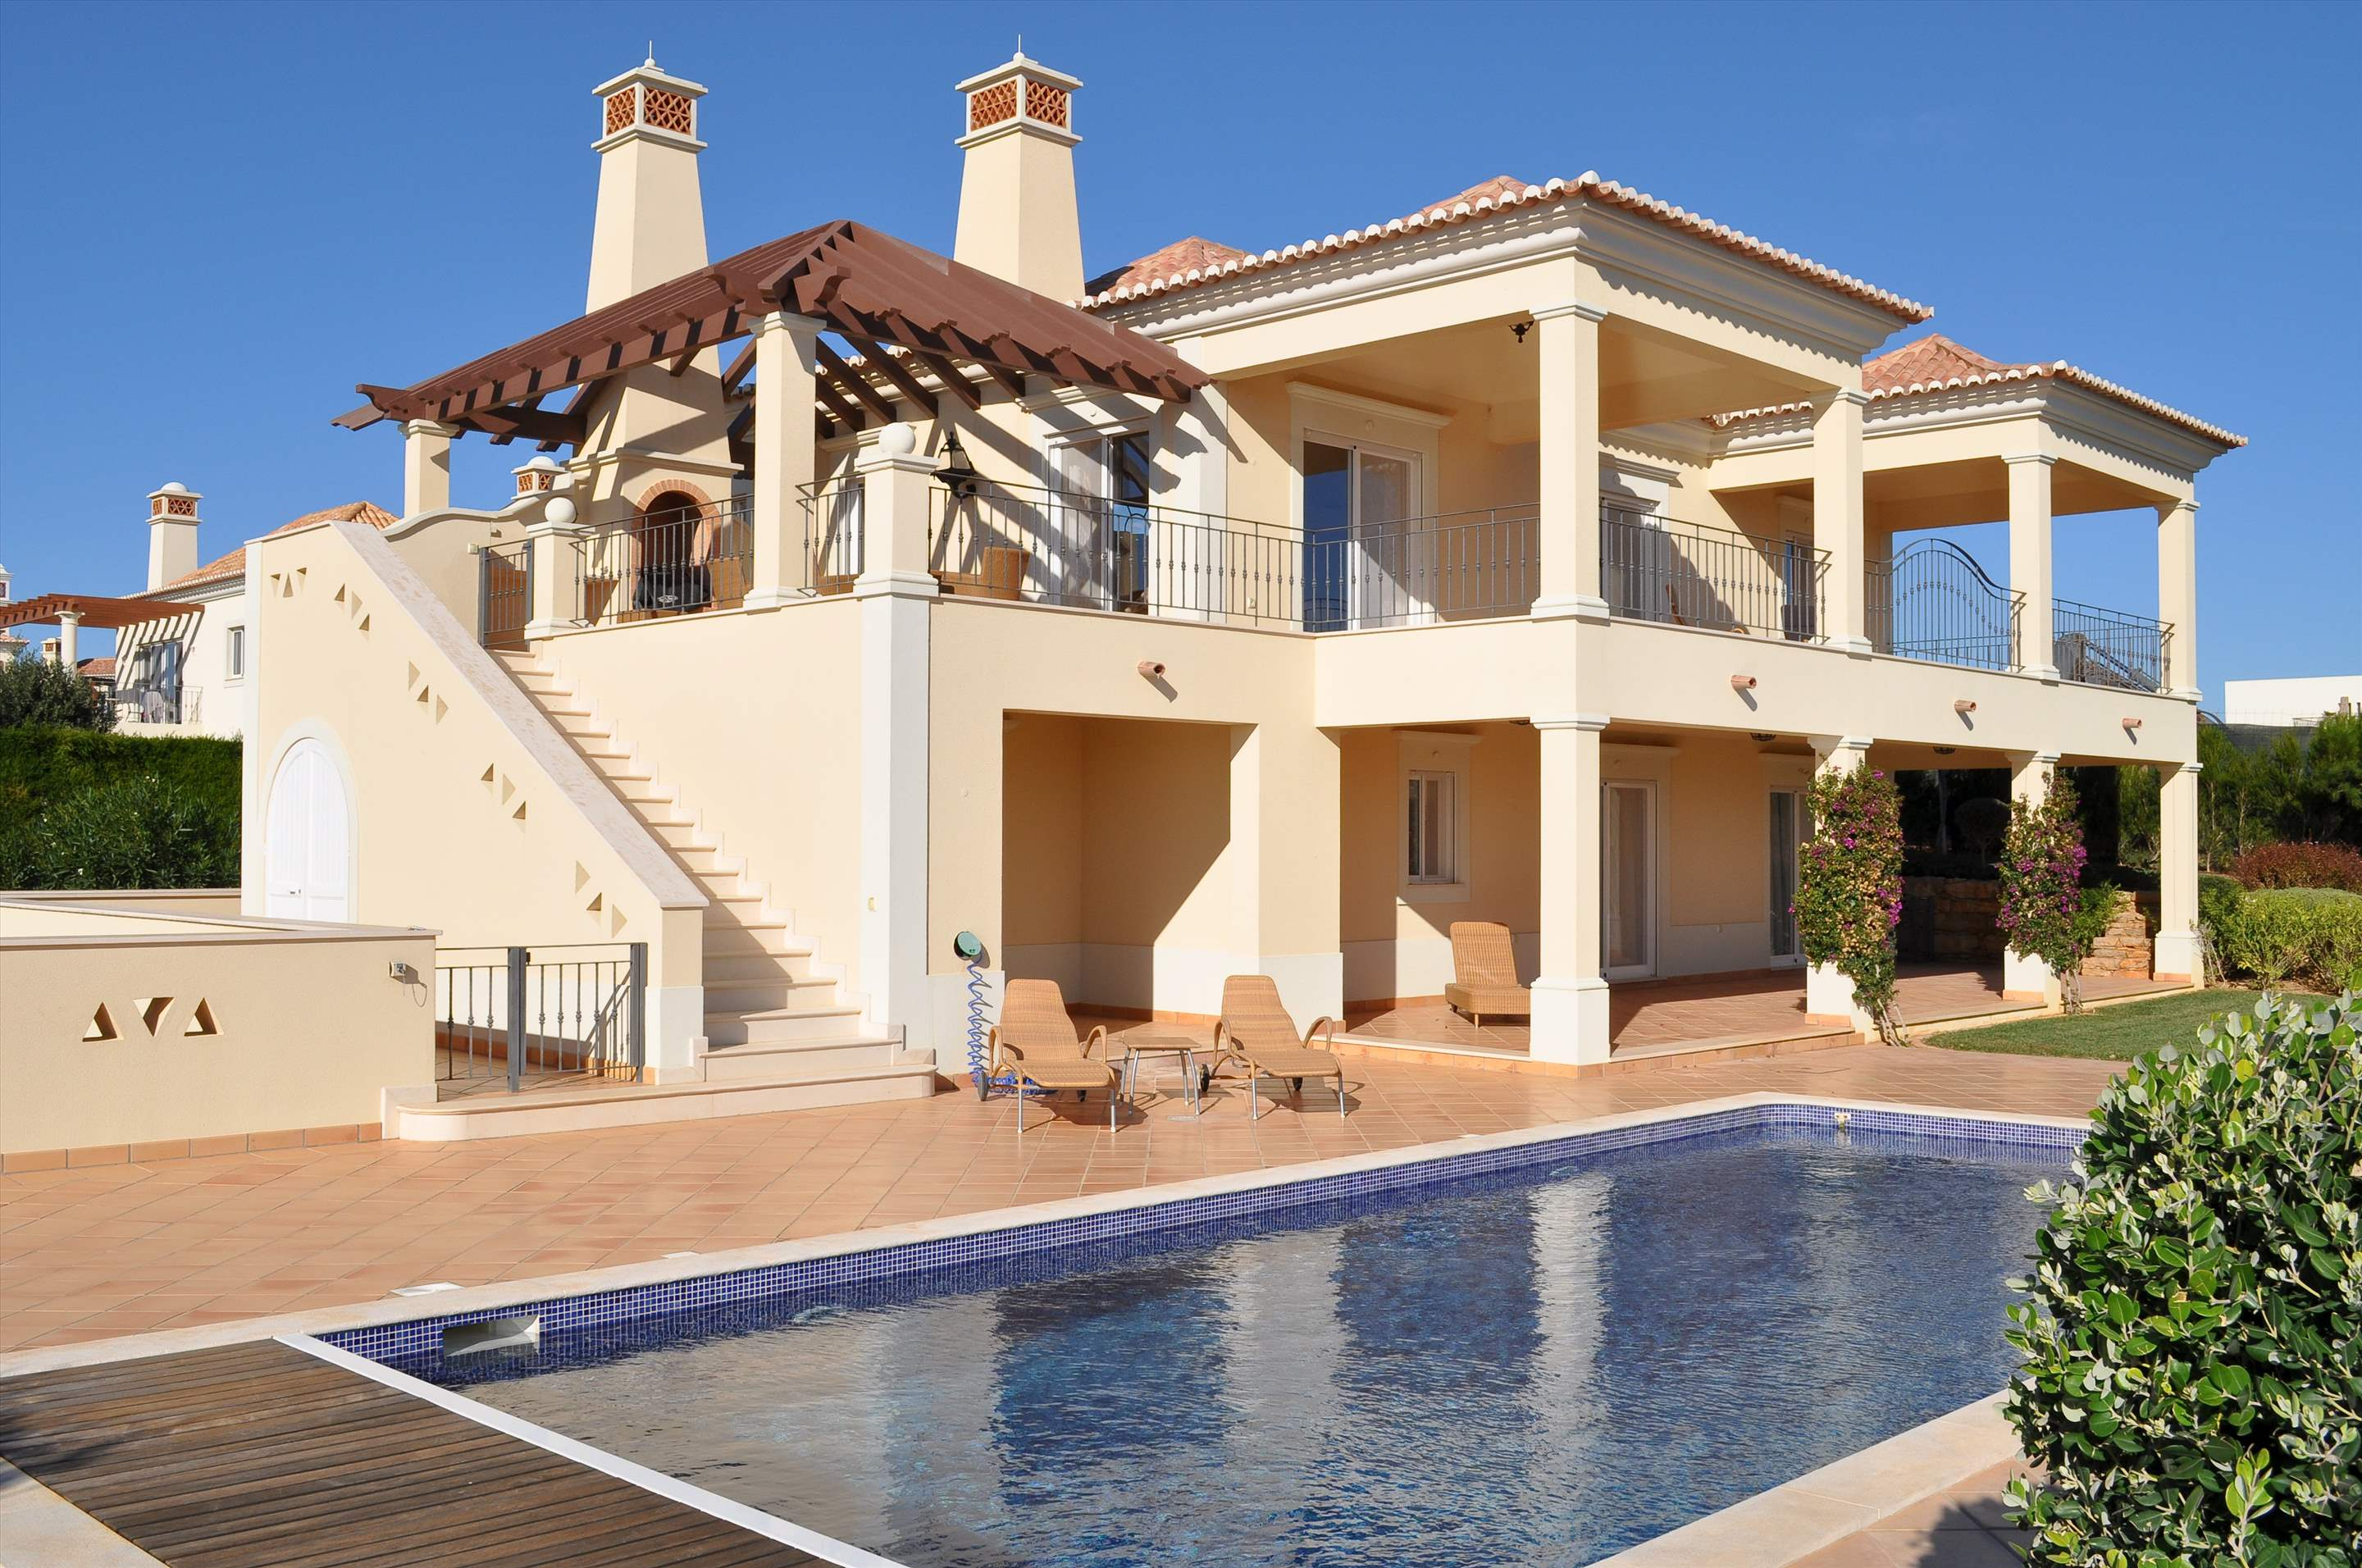 Martinhal Luxury Villa No.32, Three bedroom villa, 3 bedroom villa in Martinhal Sagres, Algarve